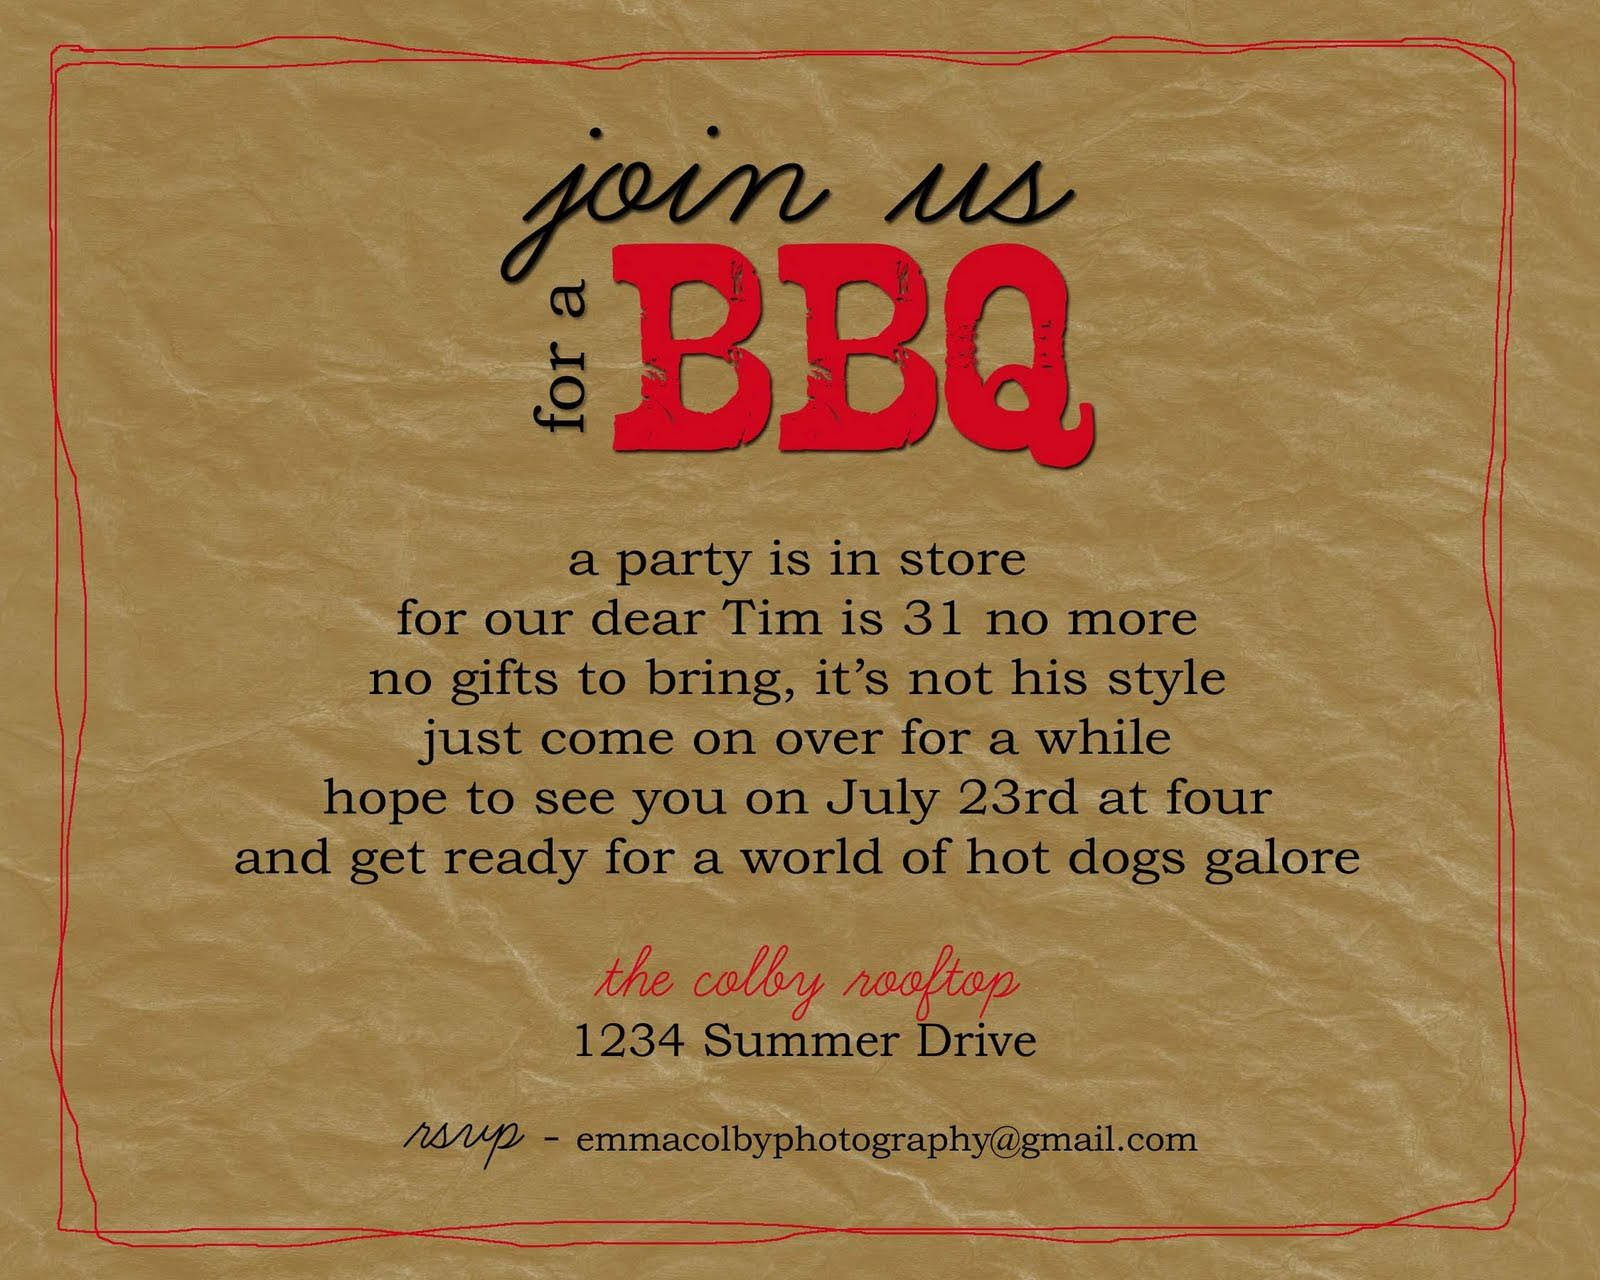 BBQ Party Invitation Wording | BBQ | Pinterest